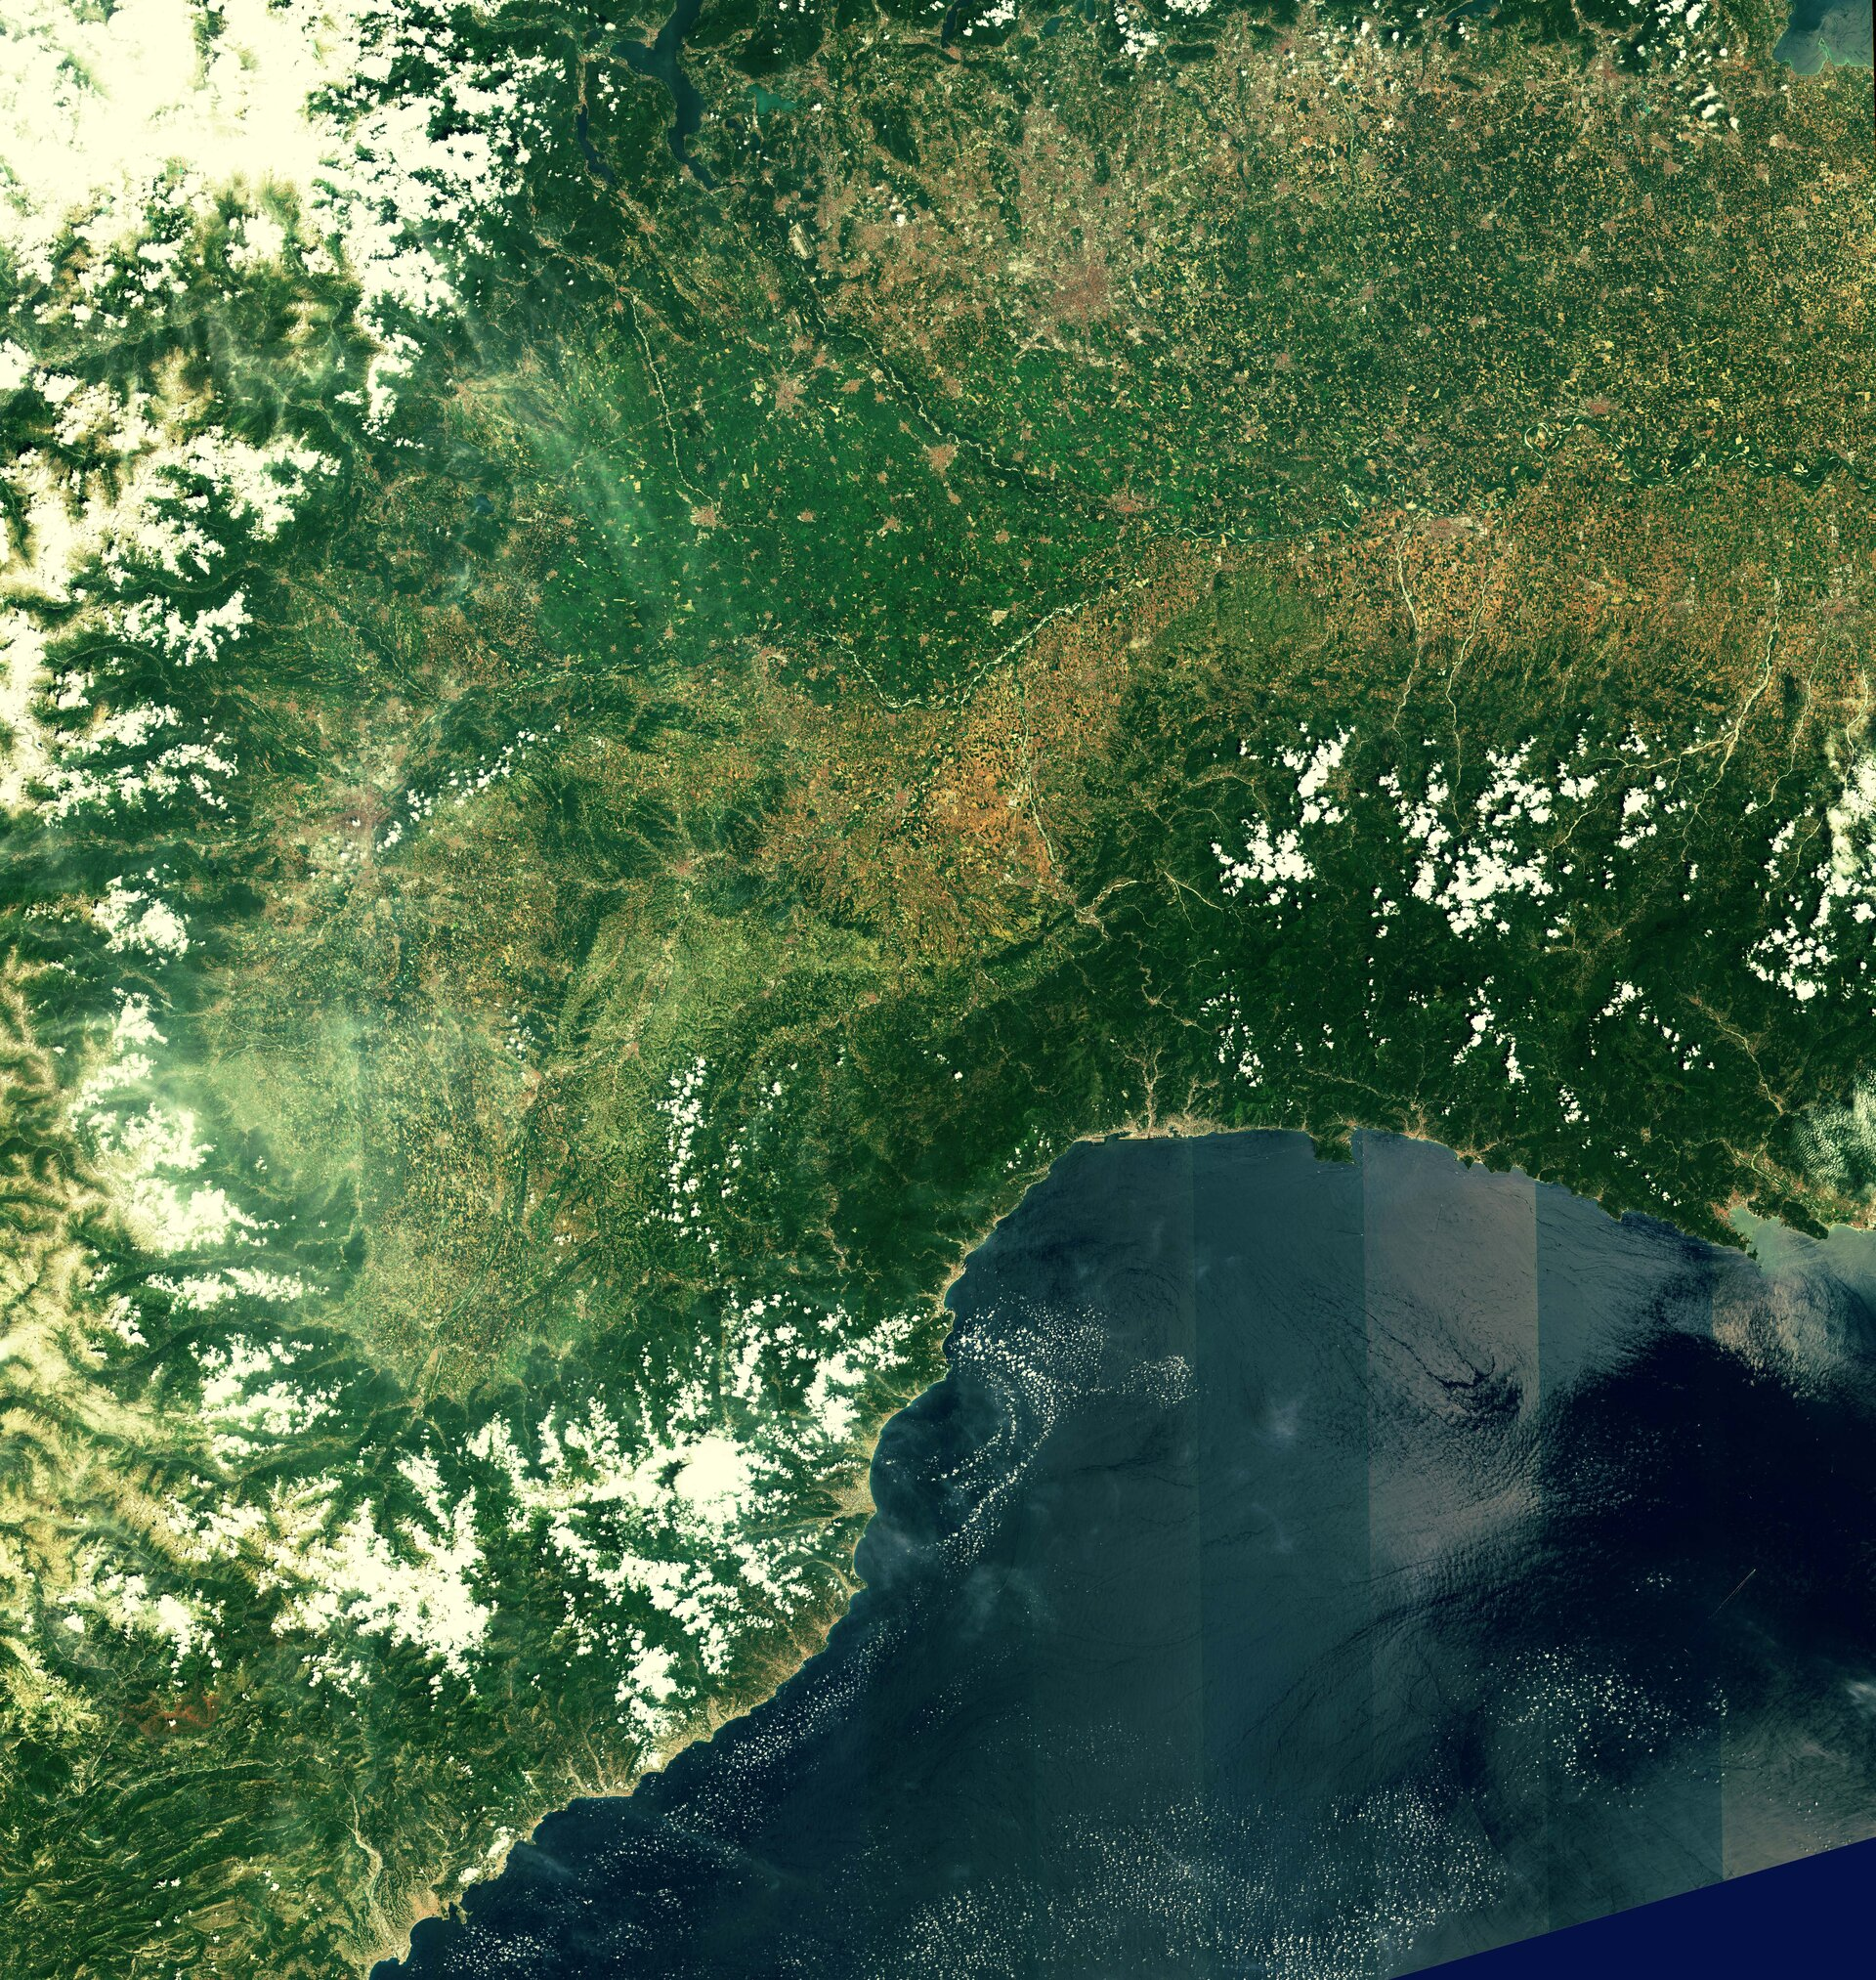 Northwest Italy and southern France from Sentinel-2A